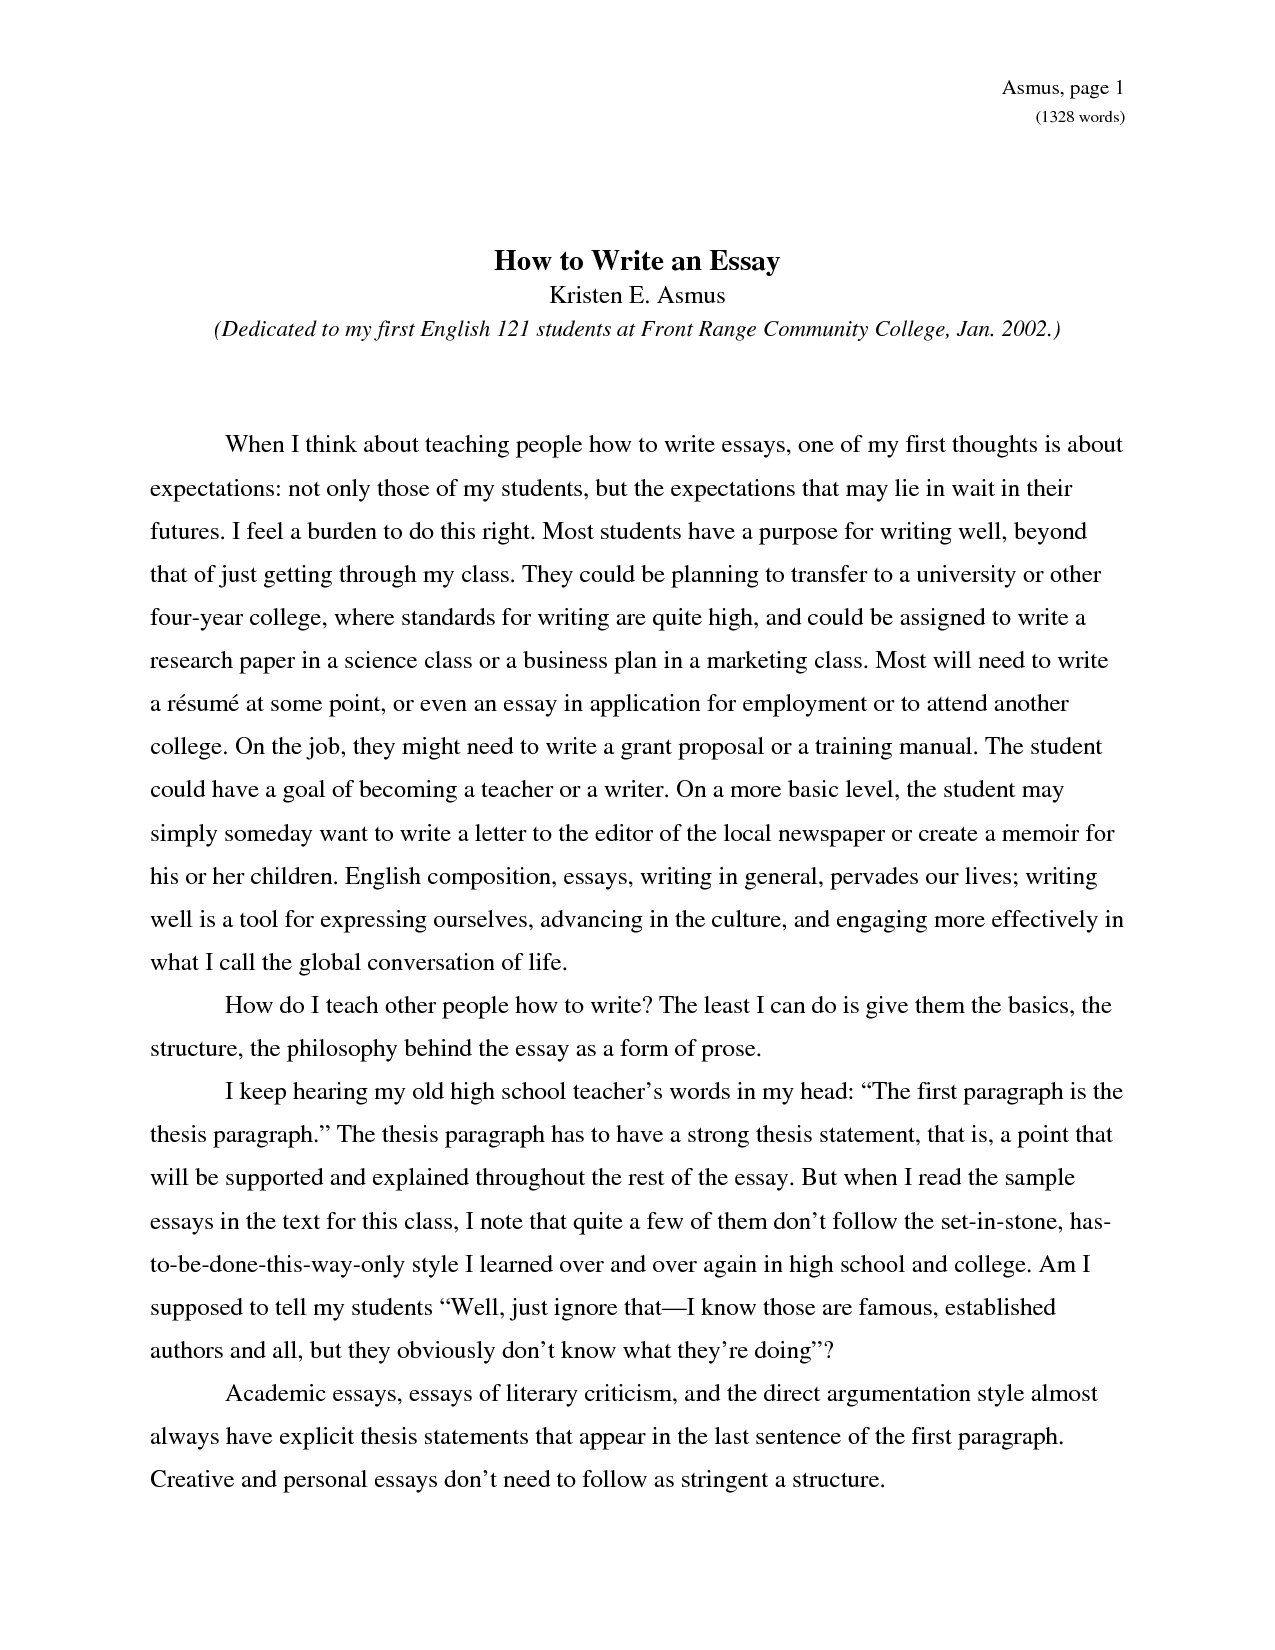 writing a literature essay introduction American literature, to my eyes, like american history, although short, however, still full of glories and shining masterpieces and writers those.